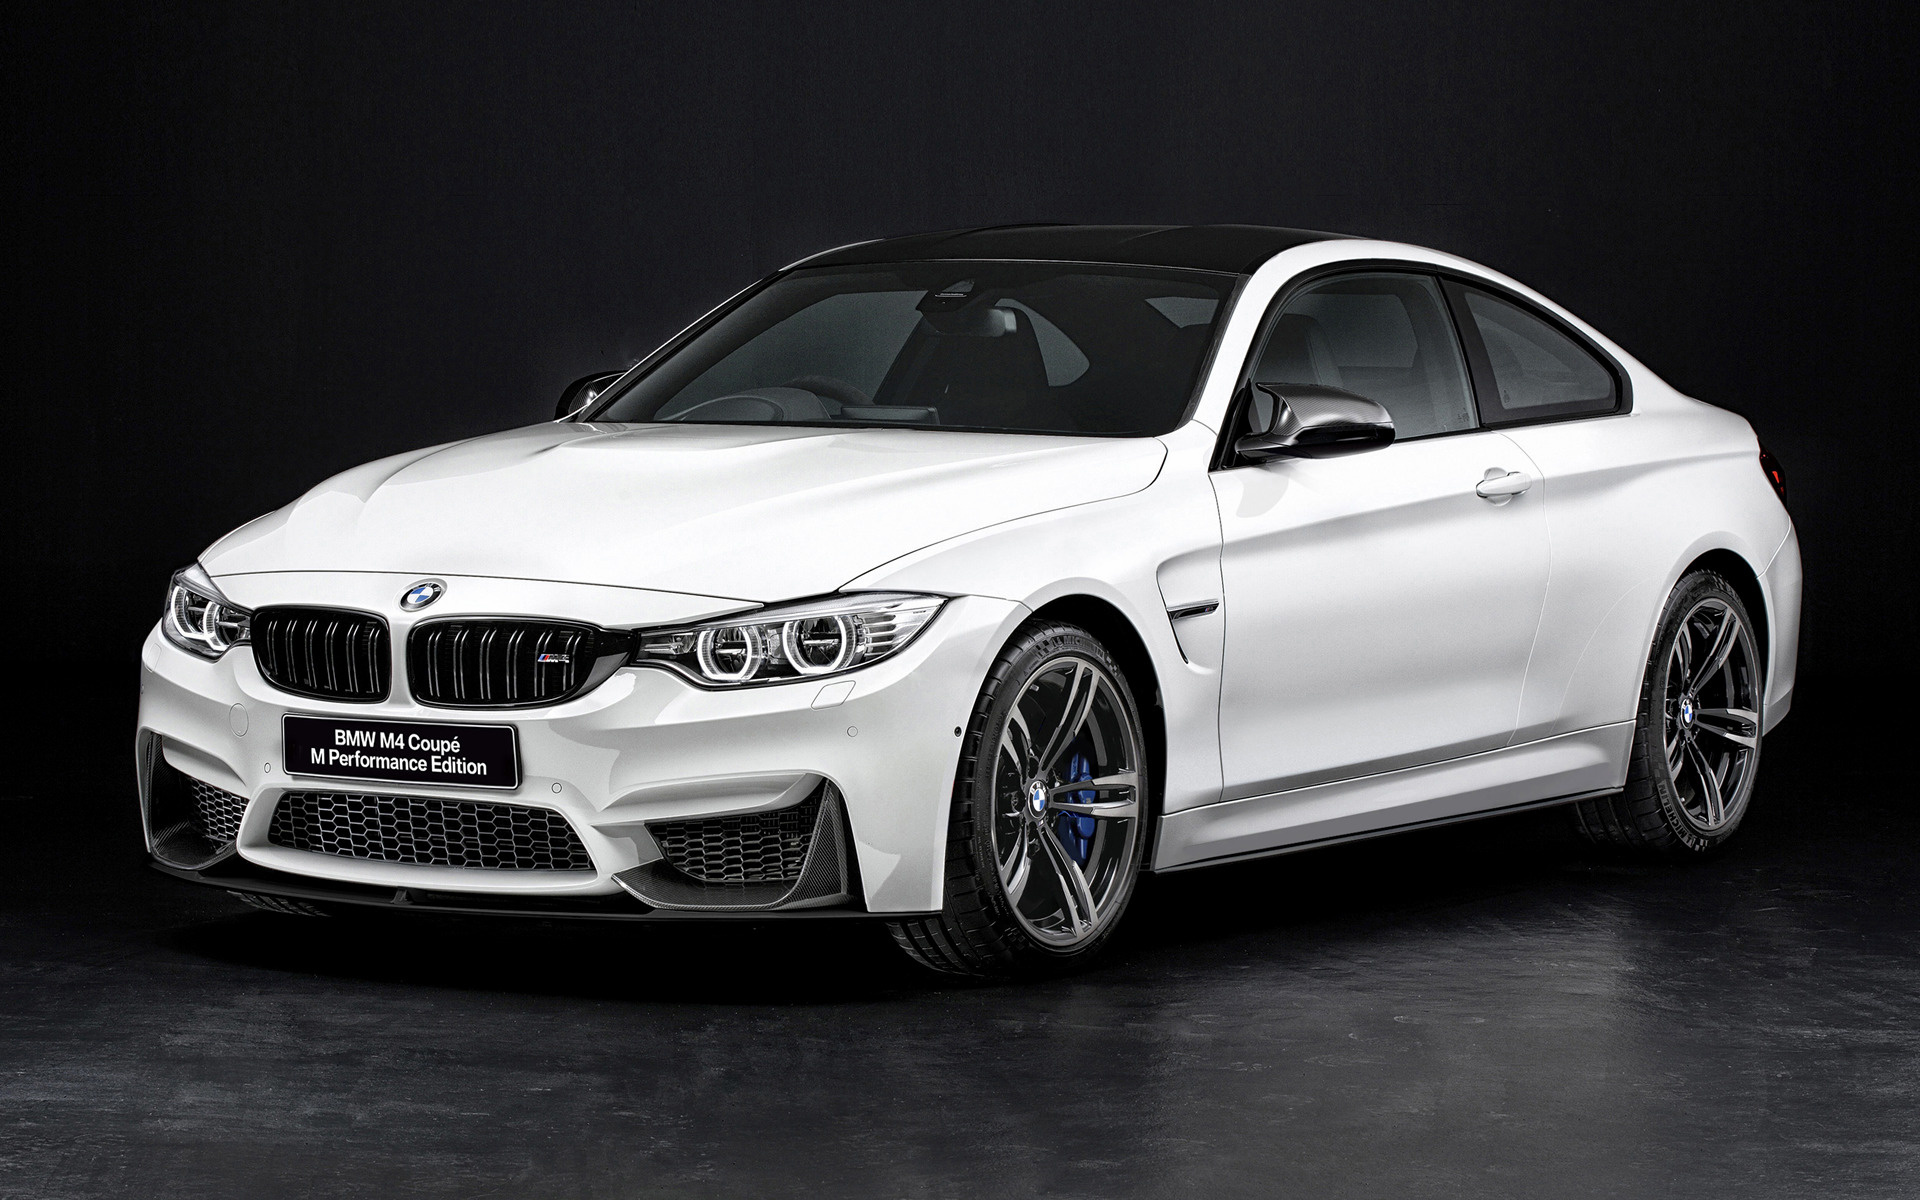 Bmw M4 Coupe M Performance Edition 2015 Jp Wallpapers